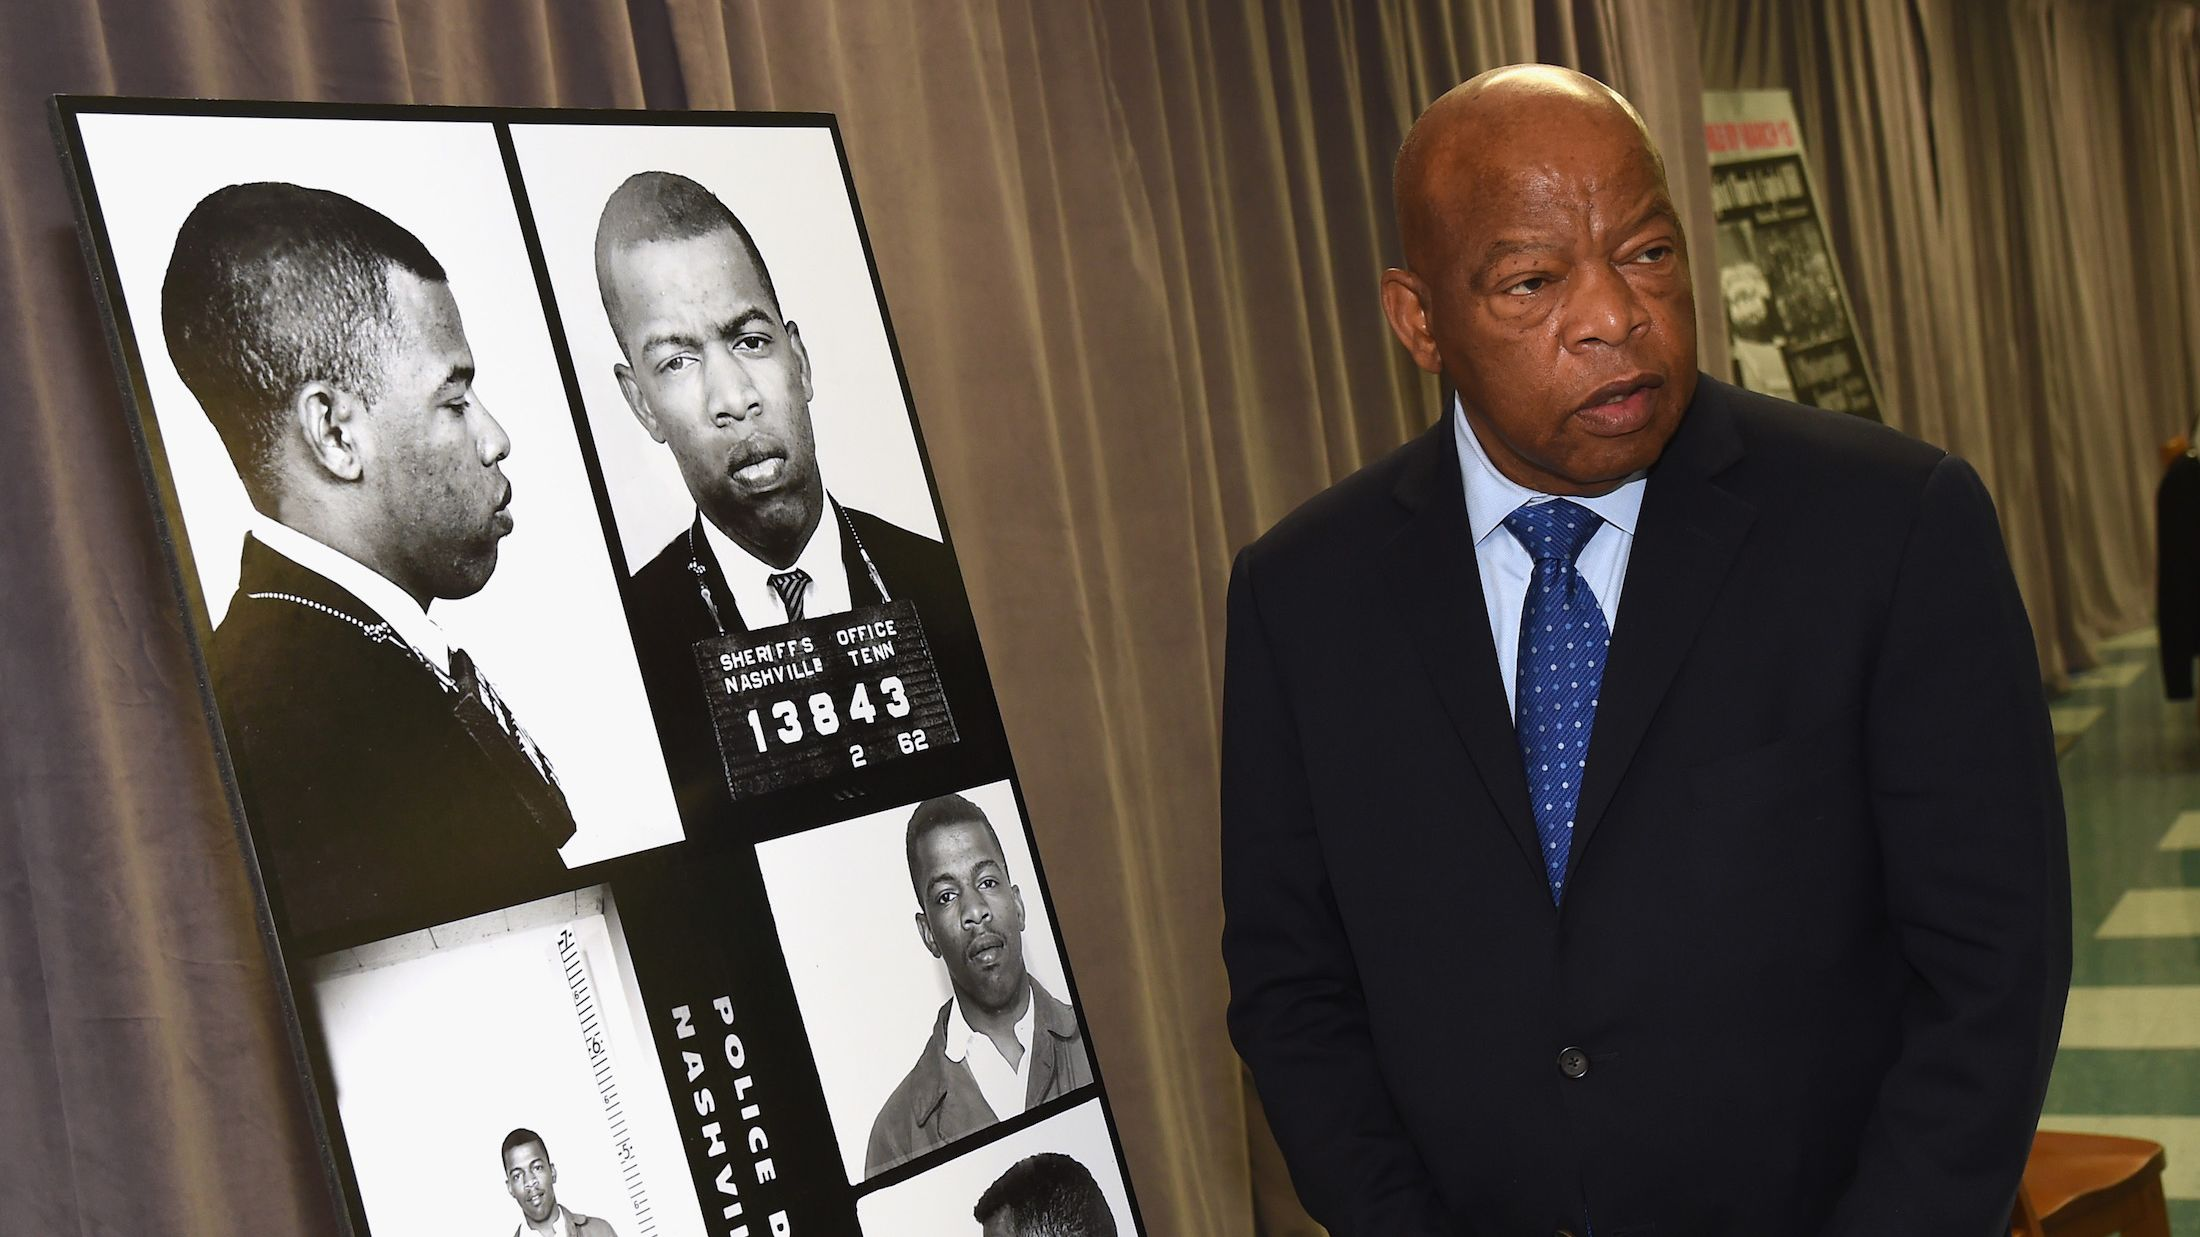 Good Trouble: John Lewis's Pivotal Role in the Nashville Lunch Counter Sit-Ins of 1960